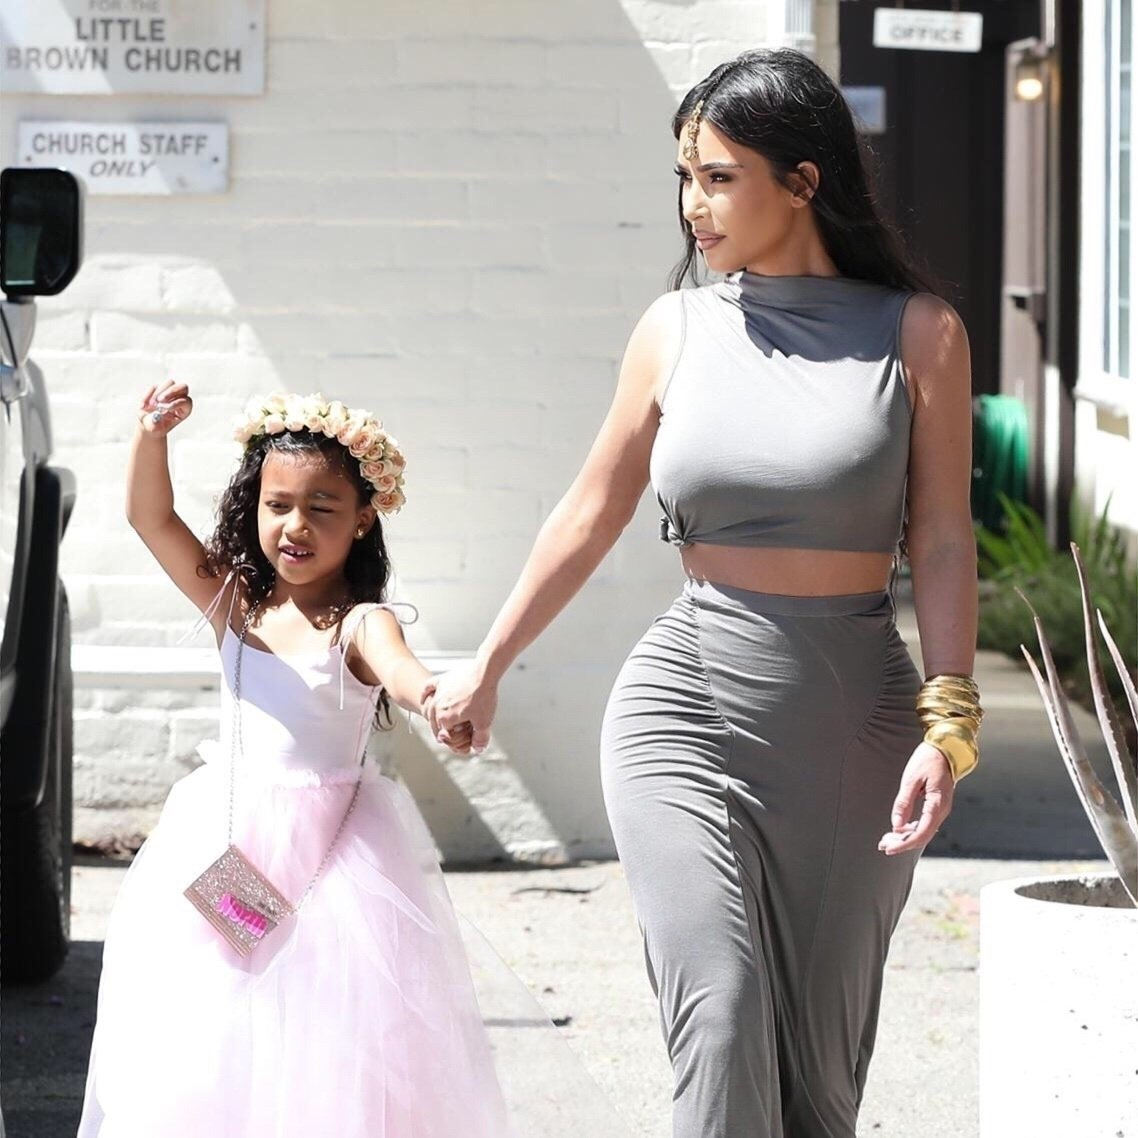 Sherman Oaks, CA - *EXCLUSIVE* - Kim Kardashian goes braless as she takes her daughter North to a wedding in Sherman Oaks. North looks cute as she dressed up as a princess for the occasion. Pictured: Kim Kardashian, North West BACKGRID USA 30 MARCH 2019 BYLINE MUST READ: Jack / BACKGRID USA: +1 310 798 9111 / usasales@backgrid.com UK: +44 208 344 2007 / uksales@backgrid.com *UK Clients - Pictures Containing Children Please Pixelate Face Prior To Publication*